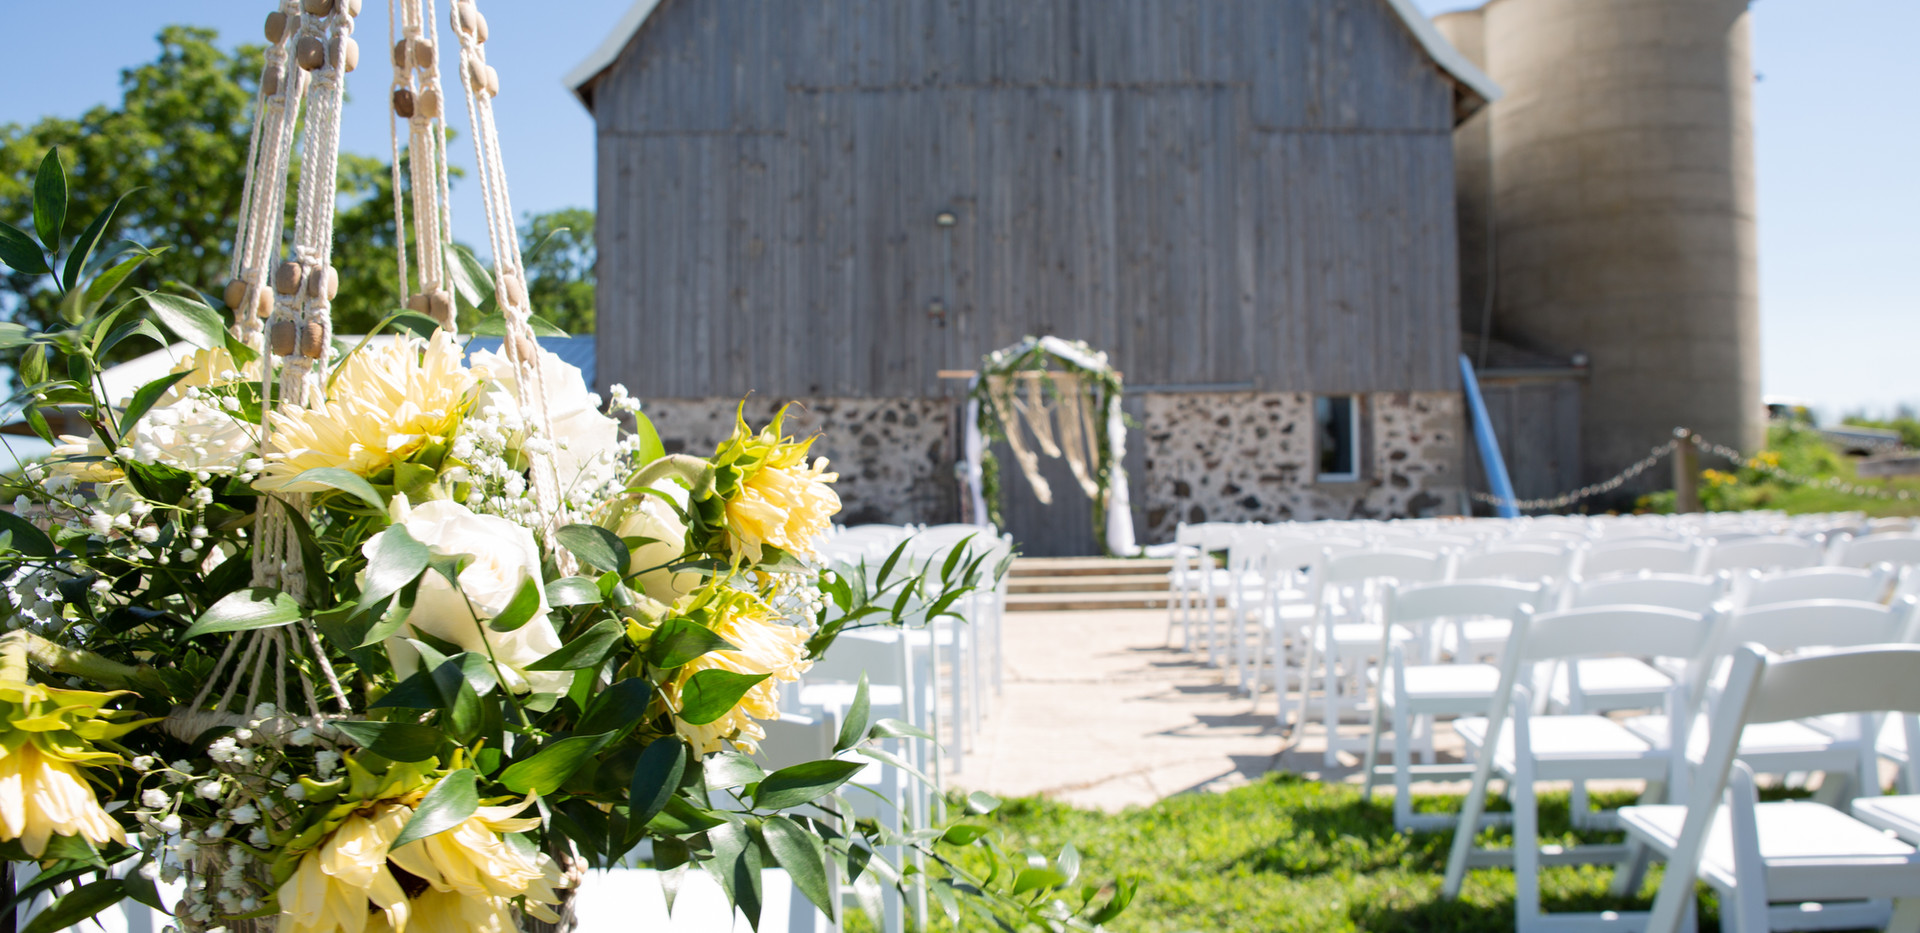 Ceremony Facing the barn